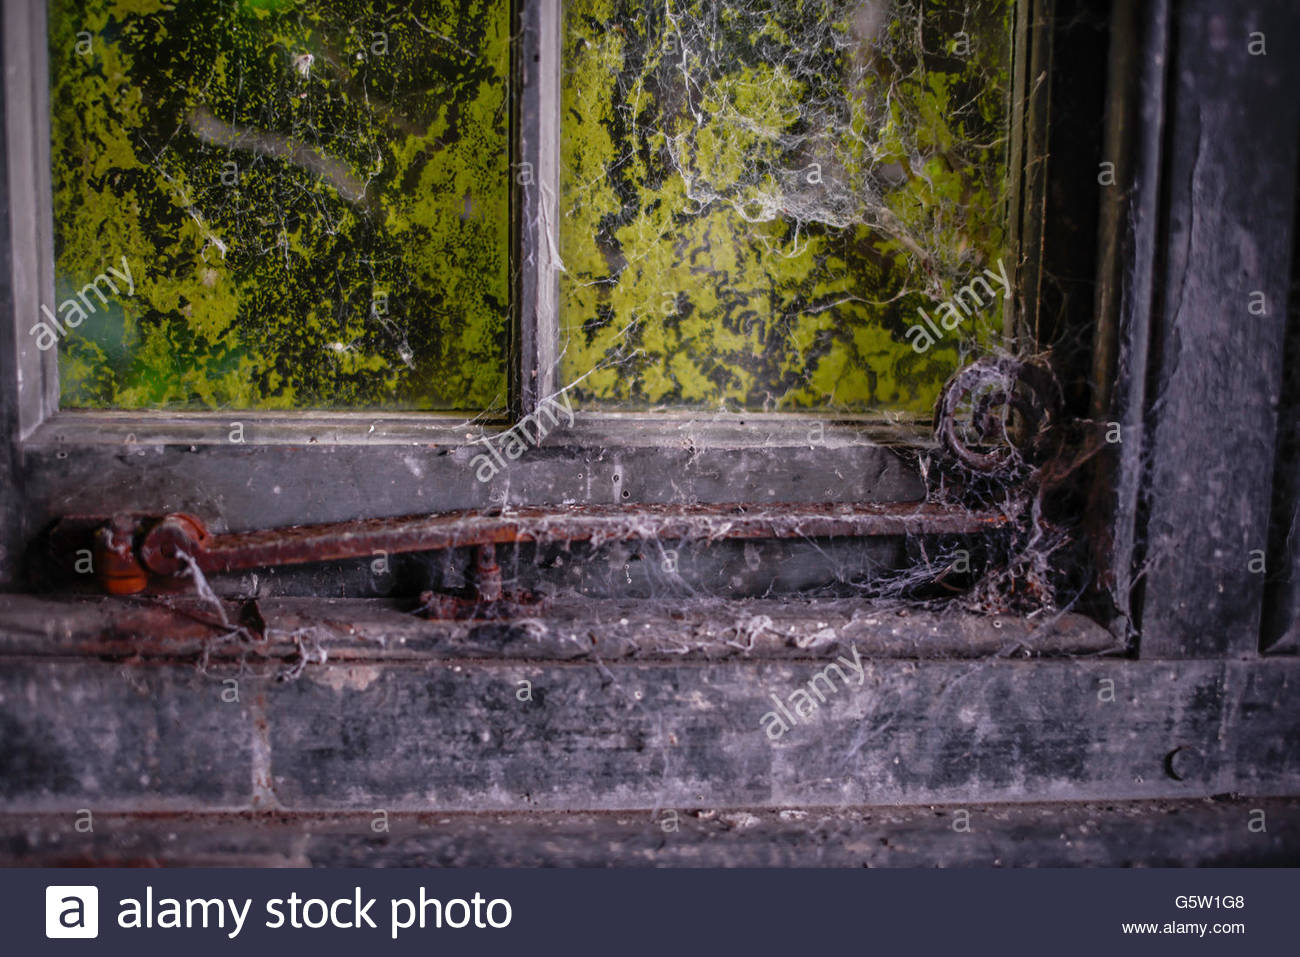 Old Wooden framed window pains with iron handles covered in moss and cobwebs. - Stock Image